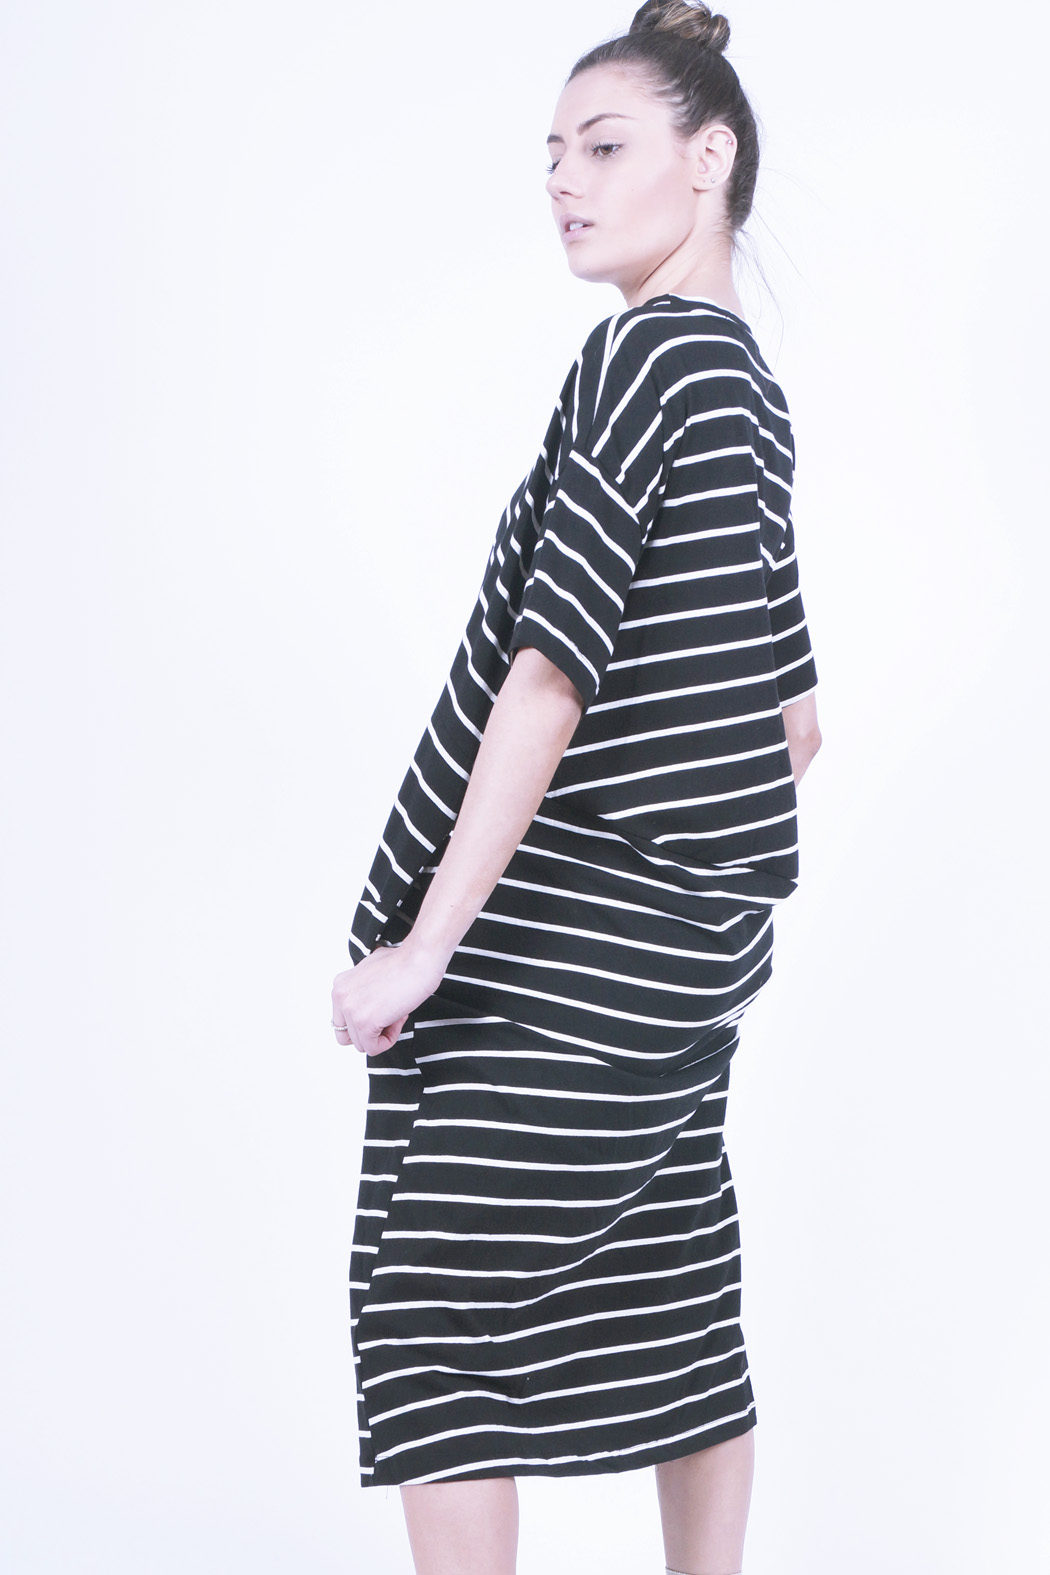 tasman dress striped